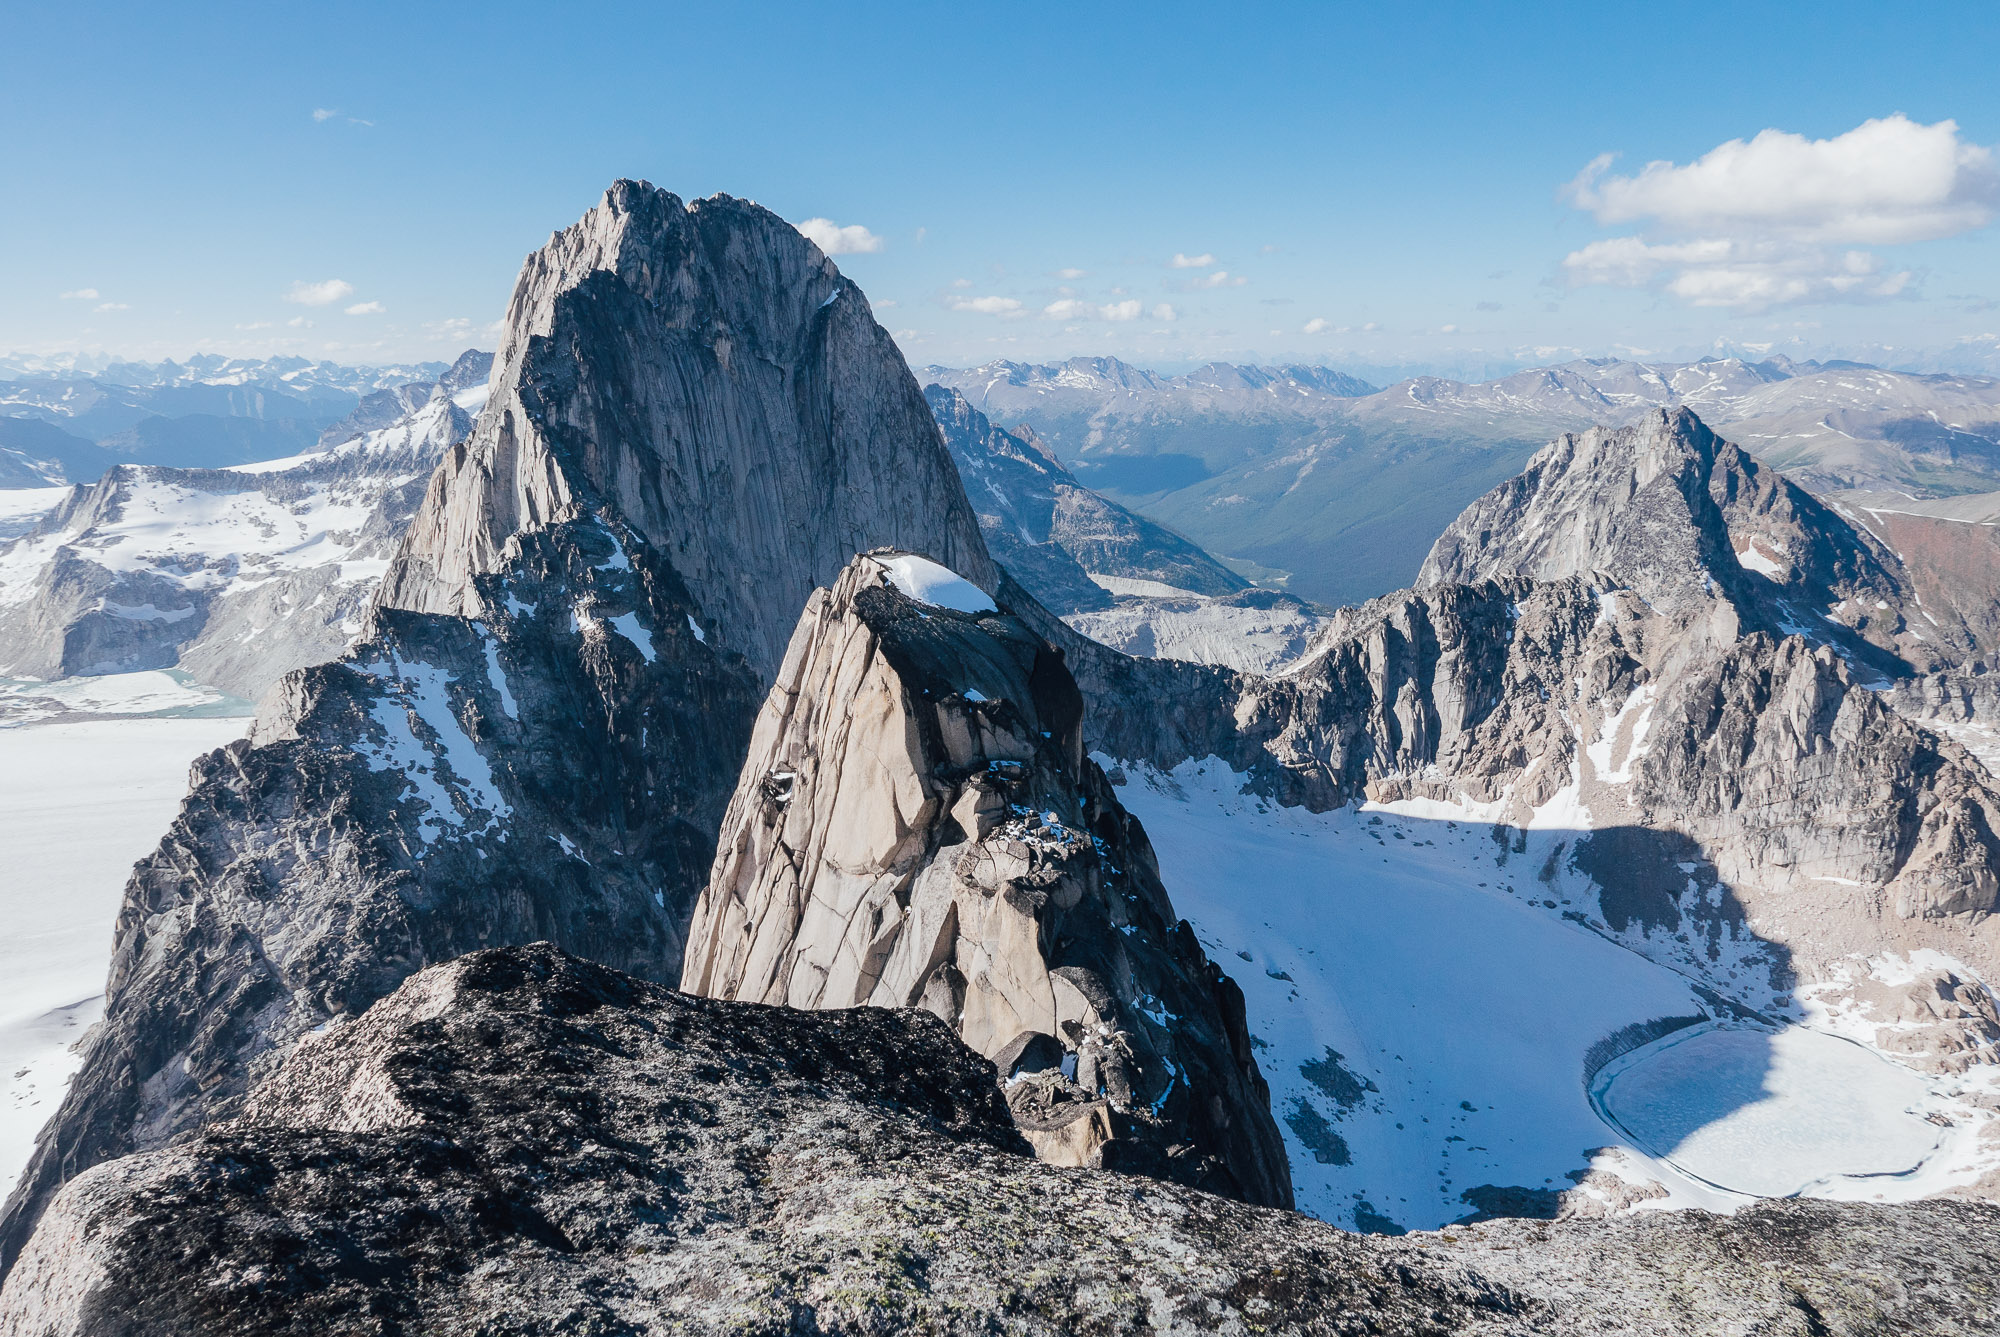 Looking from the summit of Snowpatch over at Bugaboo Spire